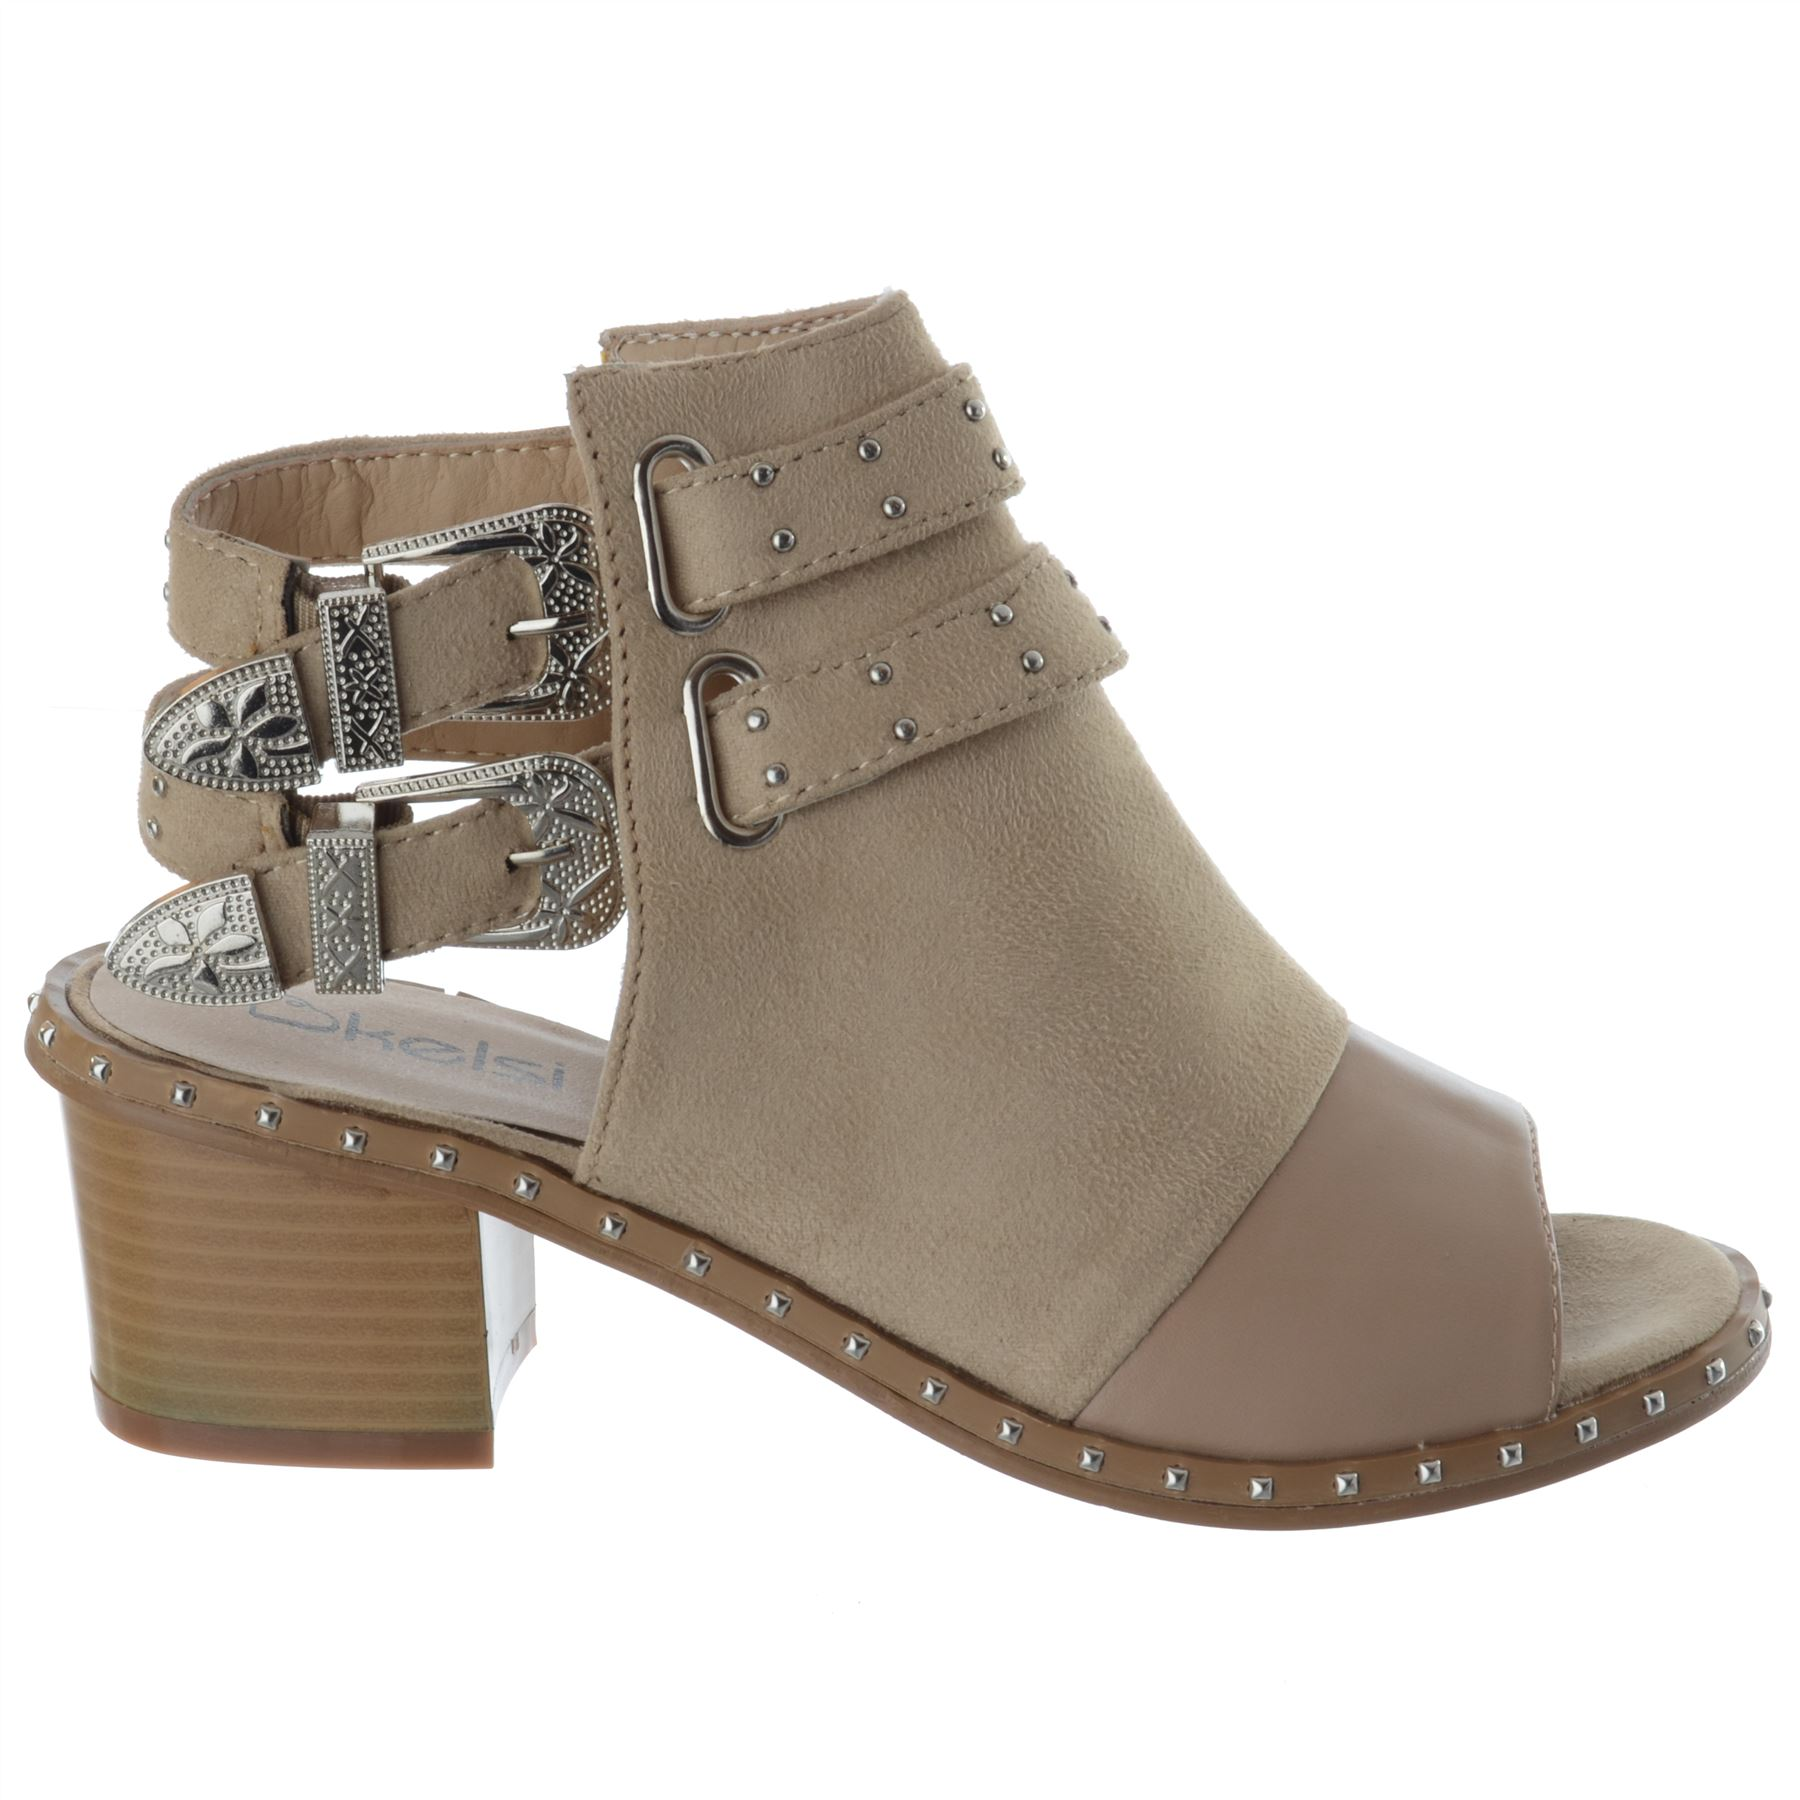 Womens-Ladies-Studded-Peep-Toe-Ankle-Strap-Chunky-Block-Heel-Sandals-Shoes-Size thumbnail 3